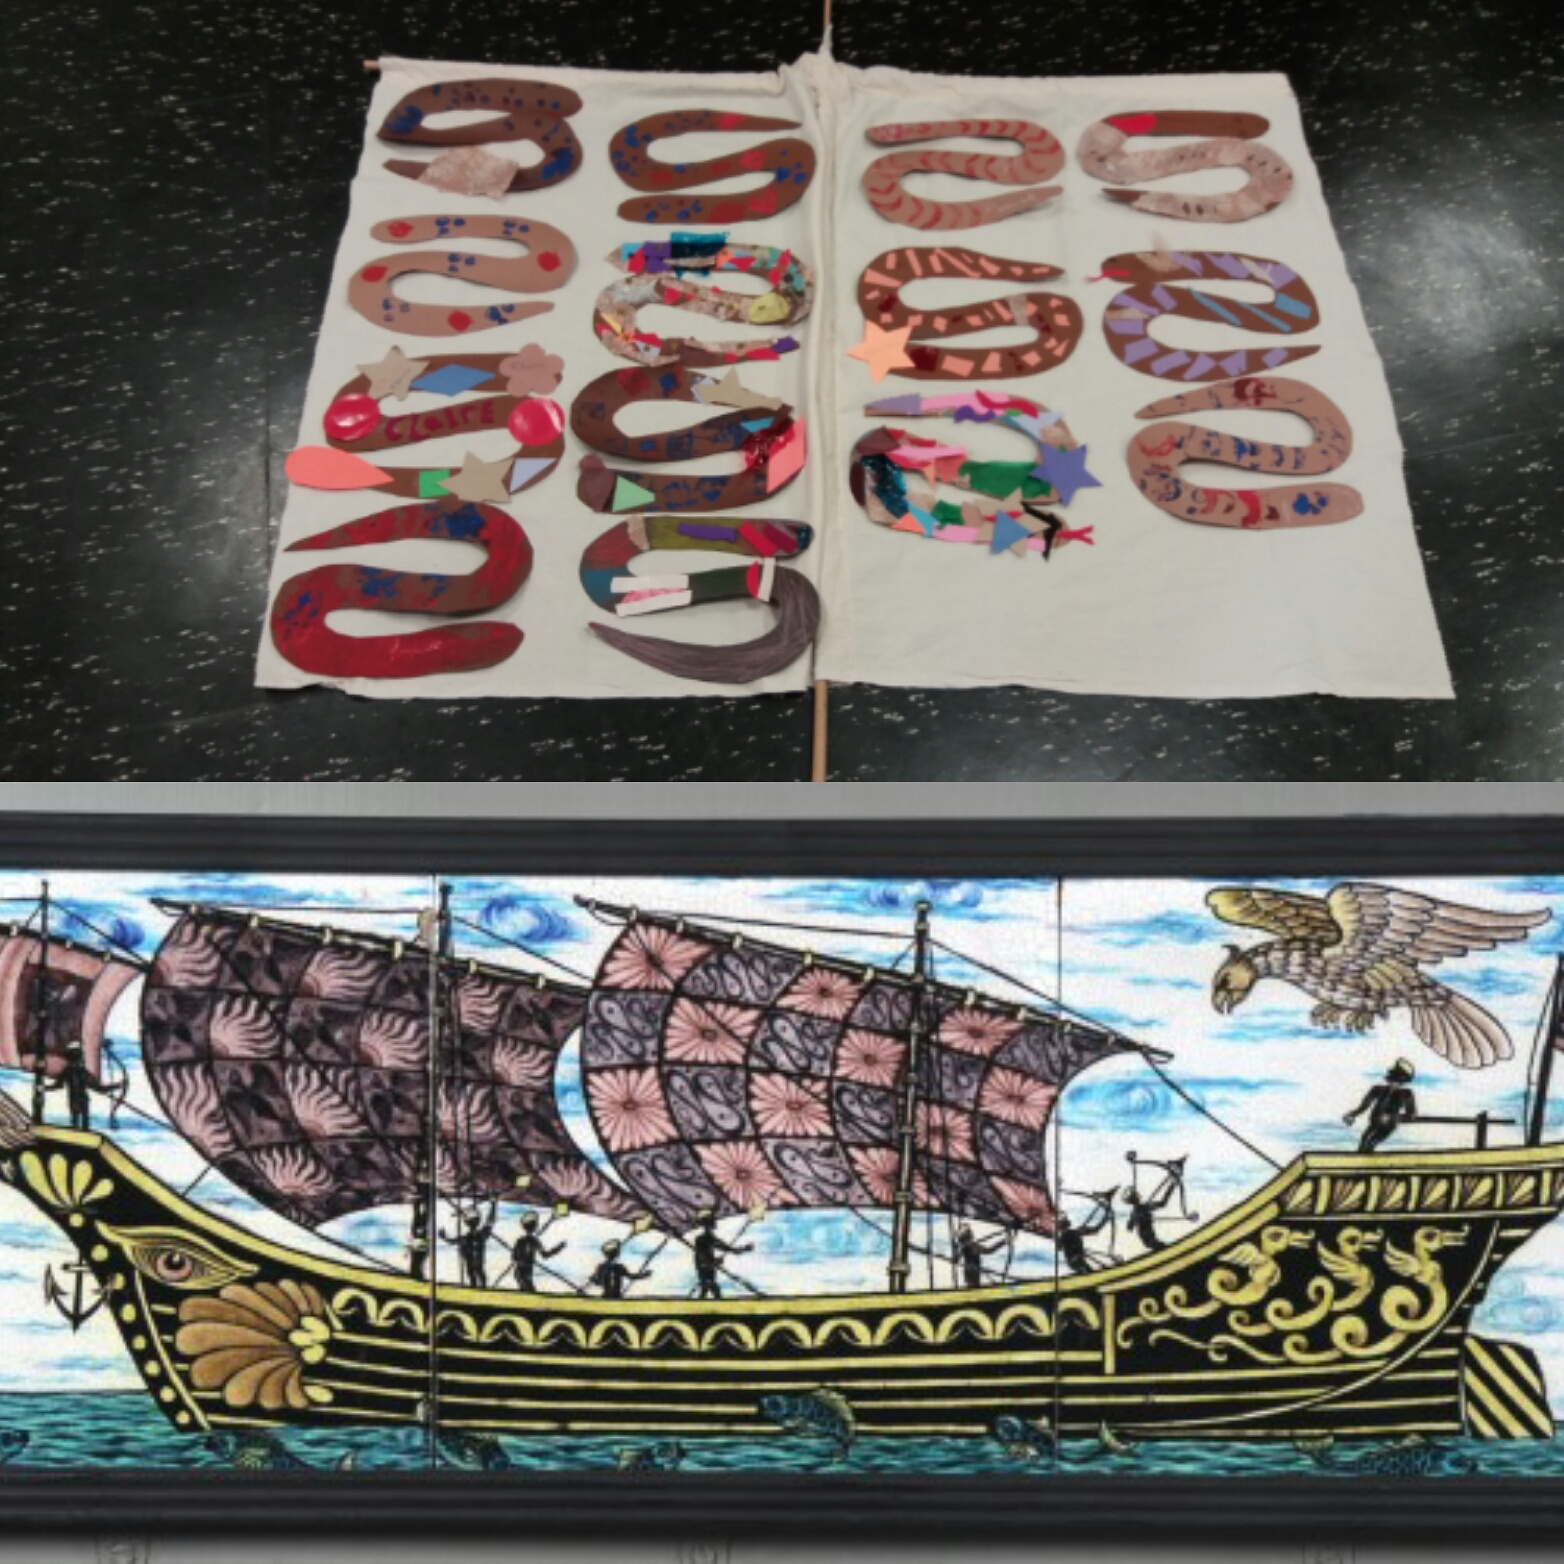 Sinbad the Sailor's sail - A seafaring session of the 5th voyage of Sinbad and the flying Roc. William de Morgan Triptych tile of the galleon ship as inspiration